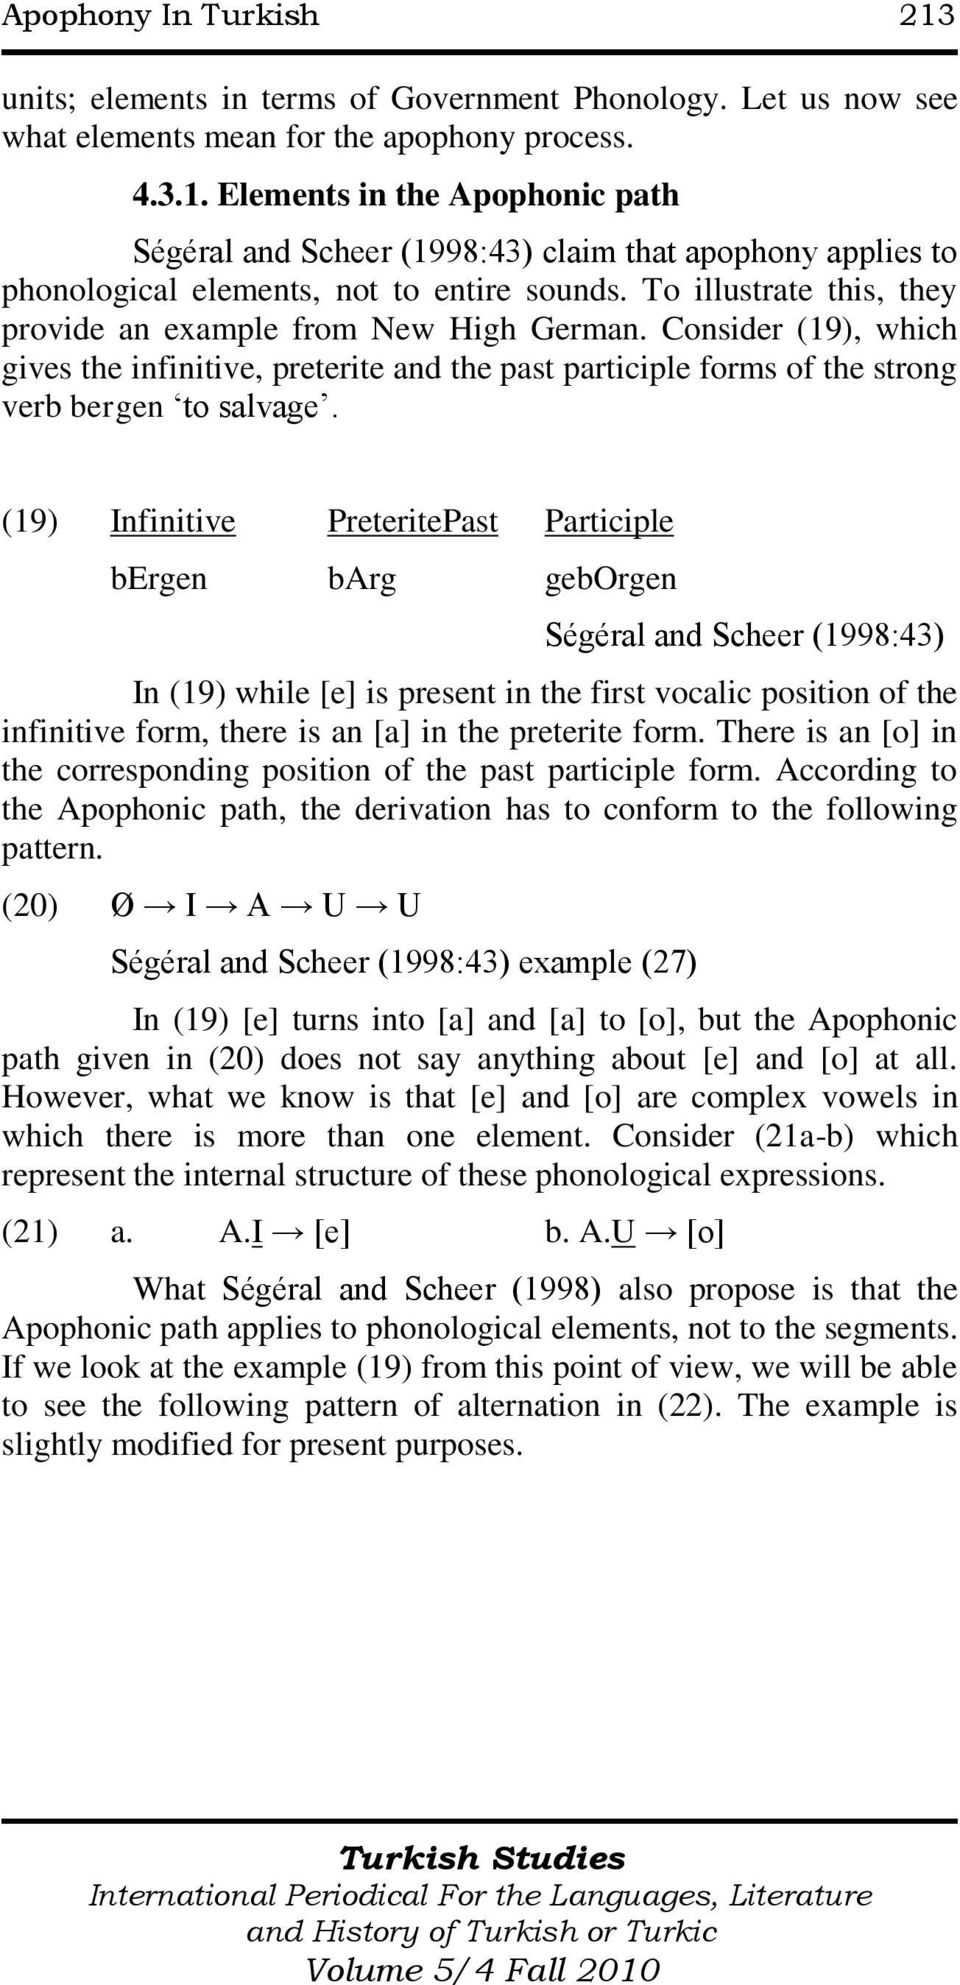 (19) Infinitive PreteritePast Participle bergen barg geborgen Ségéral and Scheer (1998:43) In (19) while [e] is present in the first vocalic position of the infinitive form, there is an [a] in the